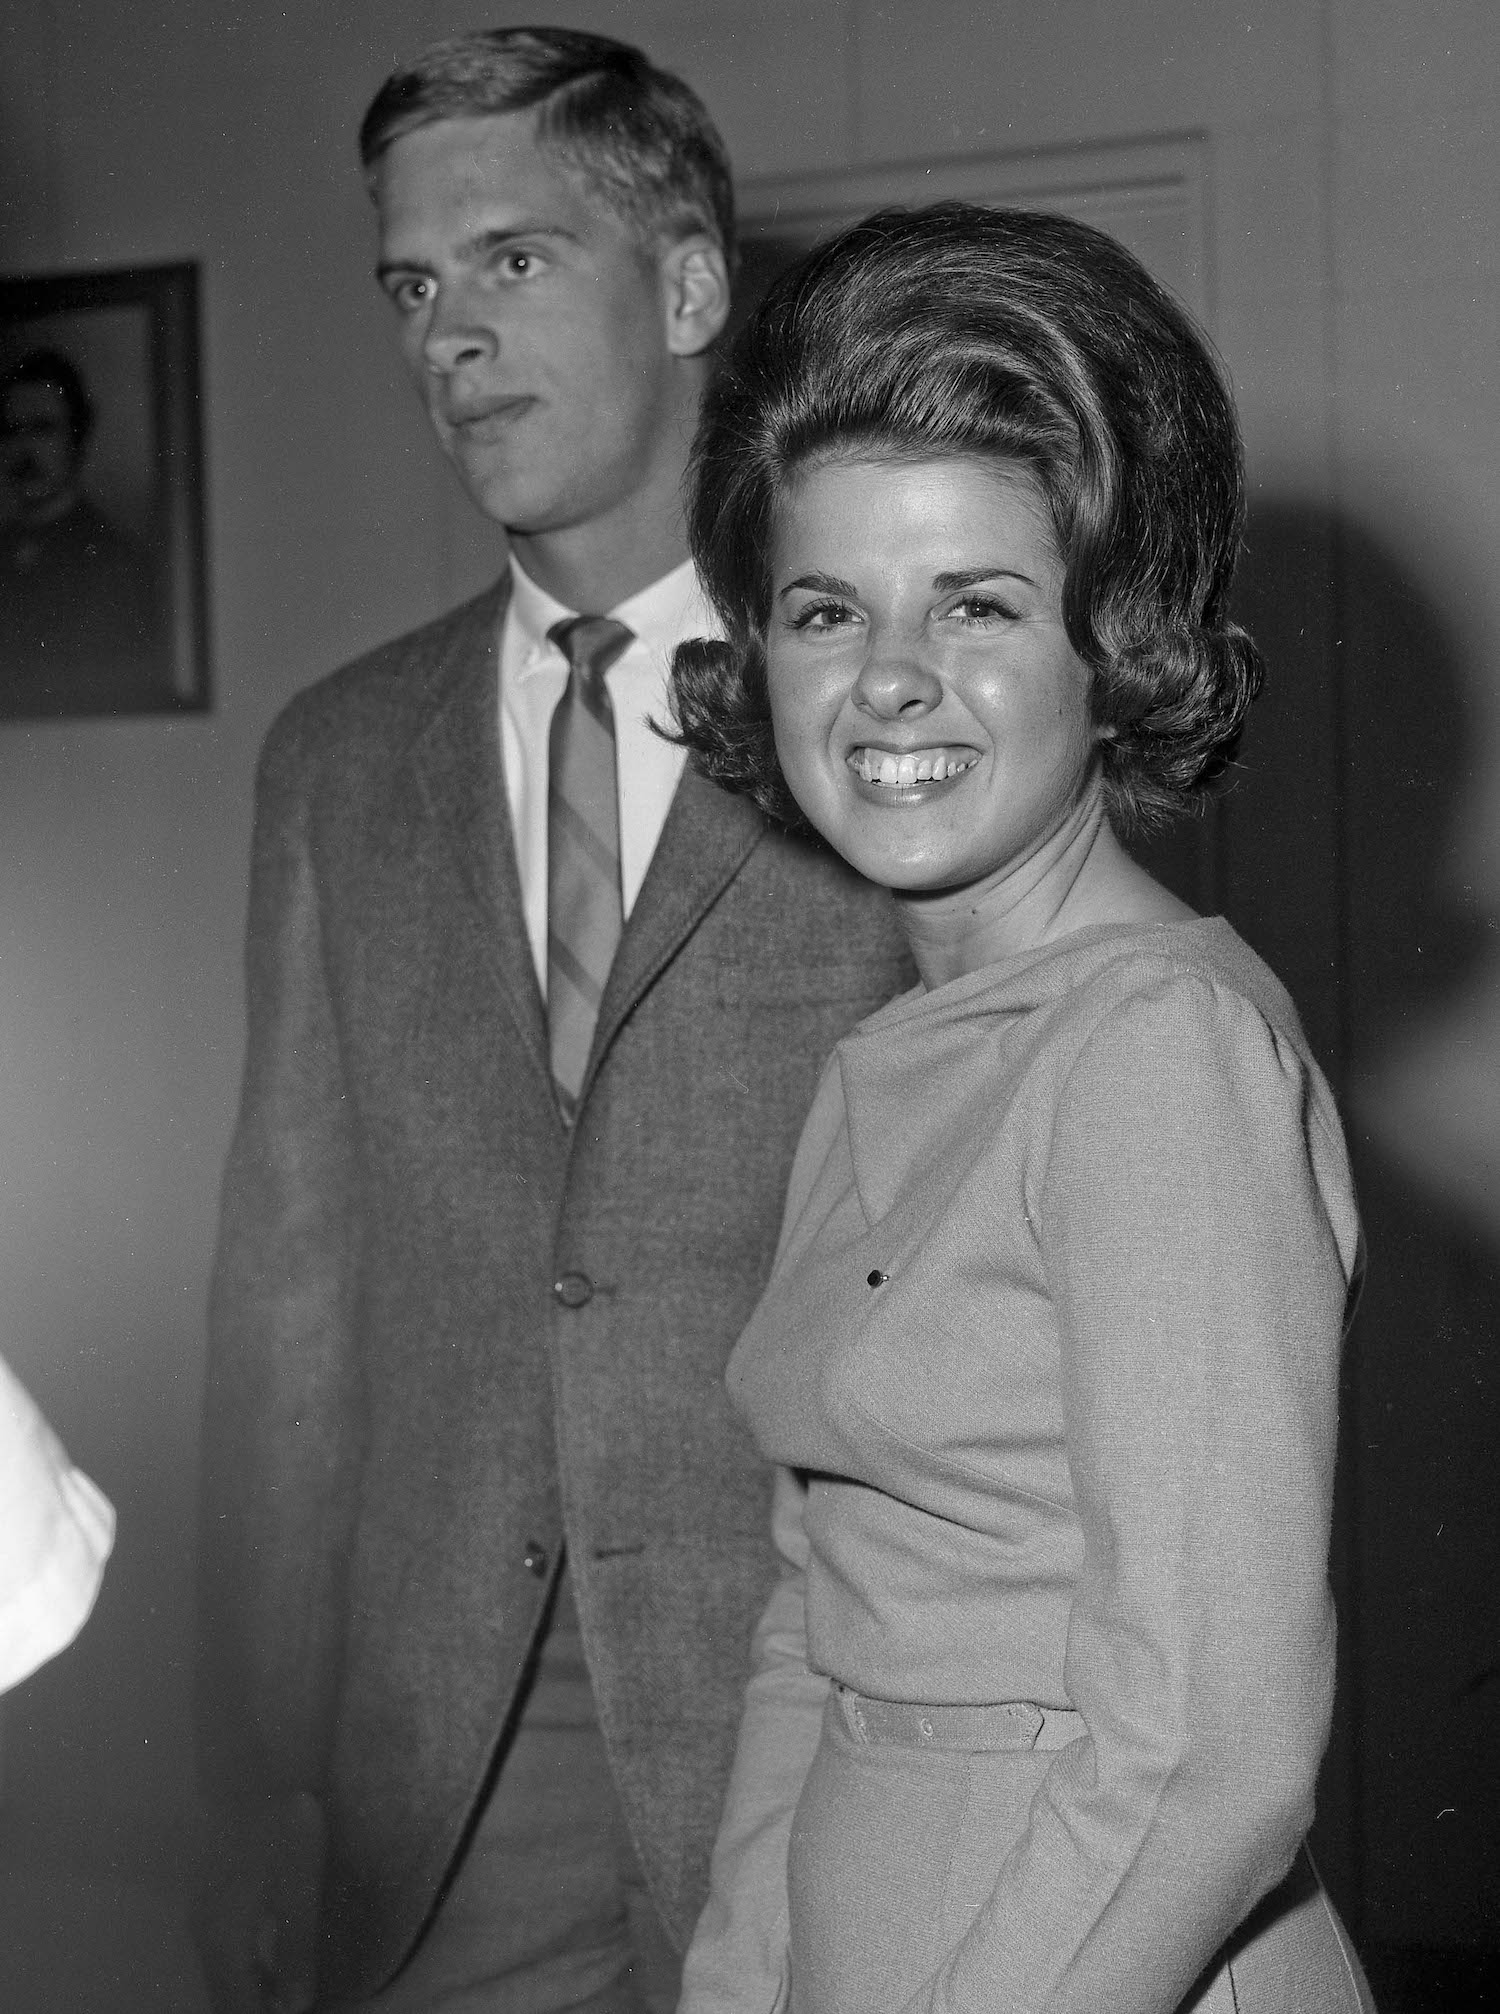 Spring-1964--Student Dinner Party--Mary Ann and John--Fresno State College